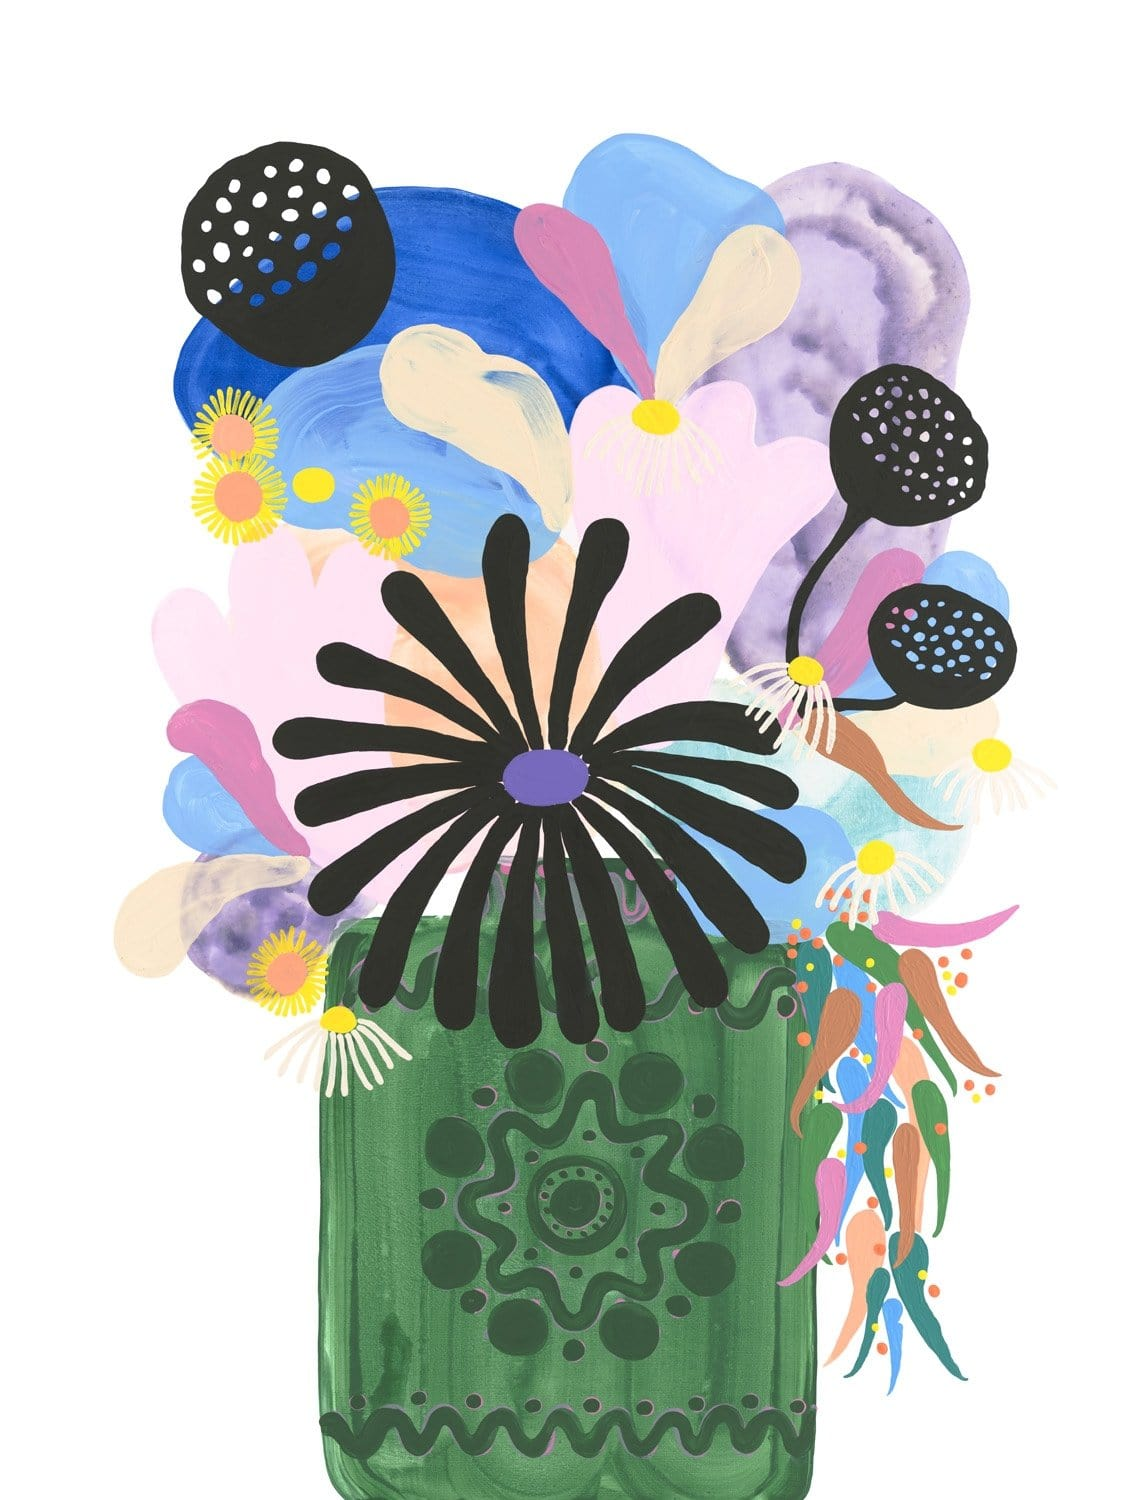 Arrangement IV (Green Vase) - Limited Edition Print-Prints-Madeleine Stamer-Greenhouse Interiors